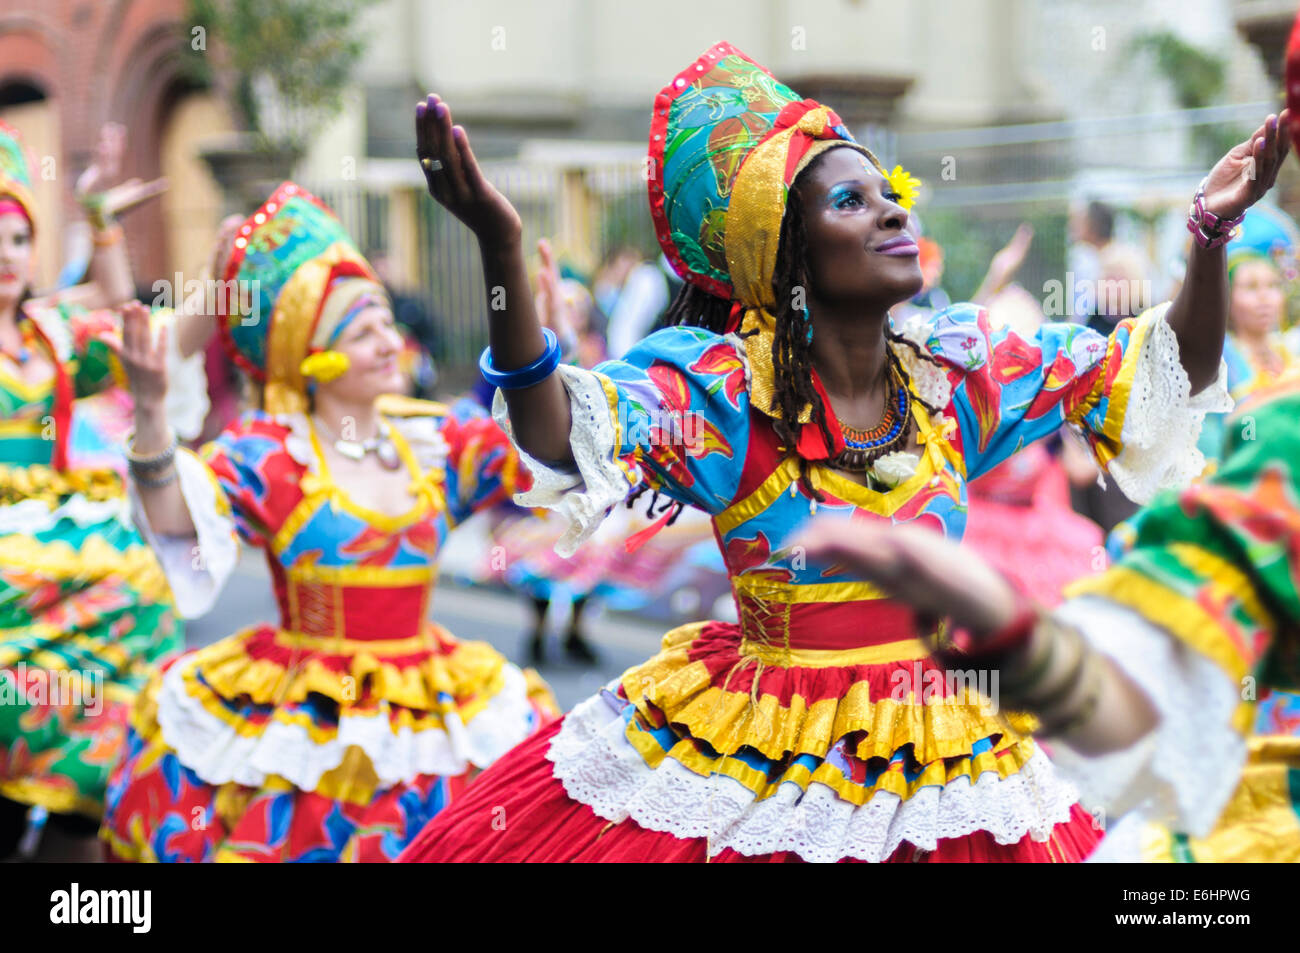 Notting Hill Carnival 2014, Children's day on Sunday. Members of group dance Maracatudo Mafua - Stock Image